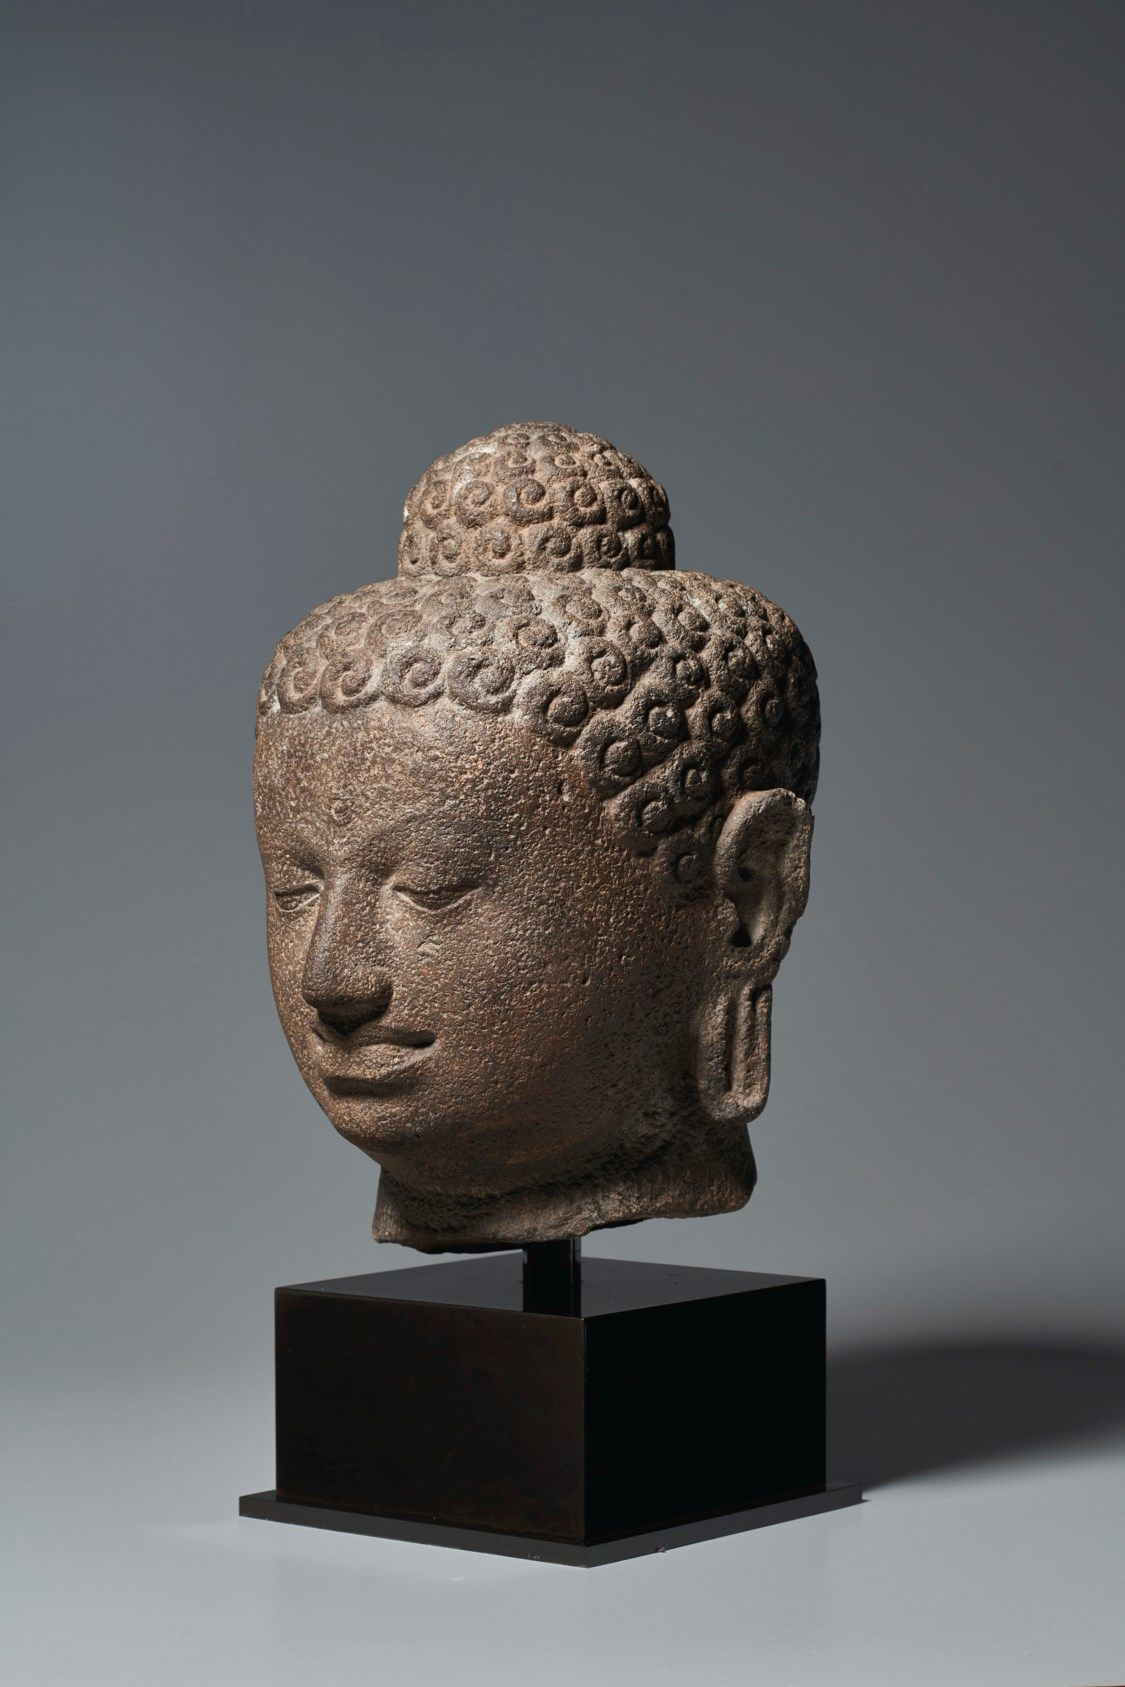 AN ANDESITE HEAD OF BUDDHA | INDONESIA, CENTRAL JAVA, 9TH-10TH CENTURY | Christie's